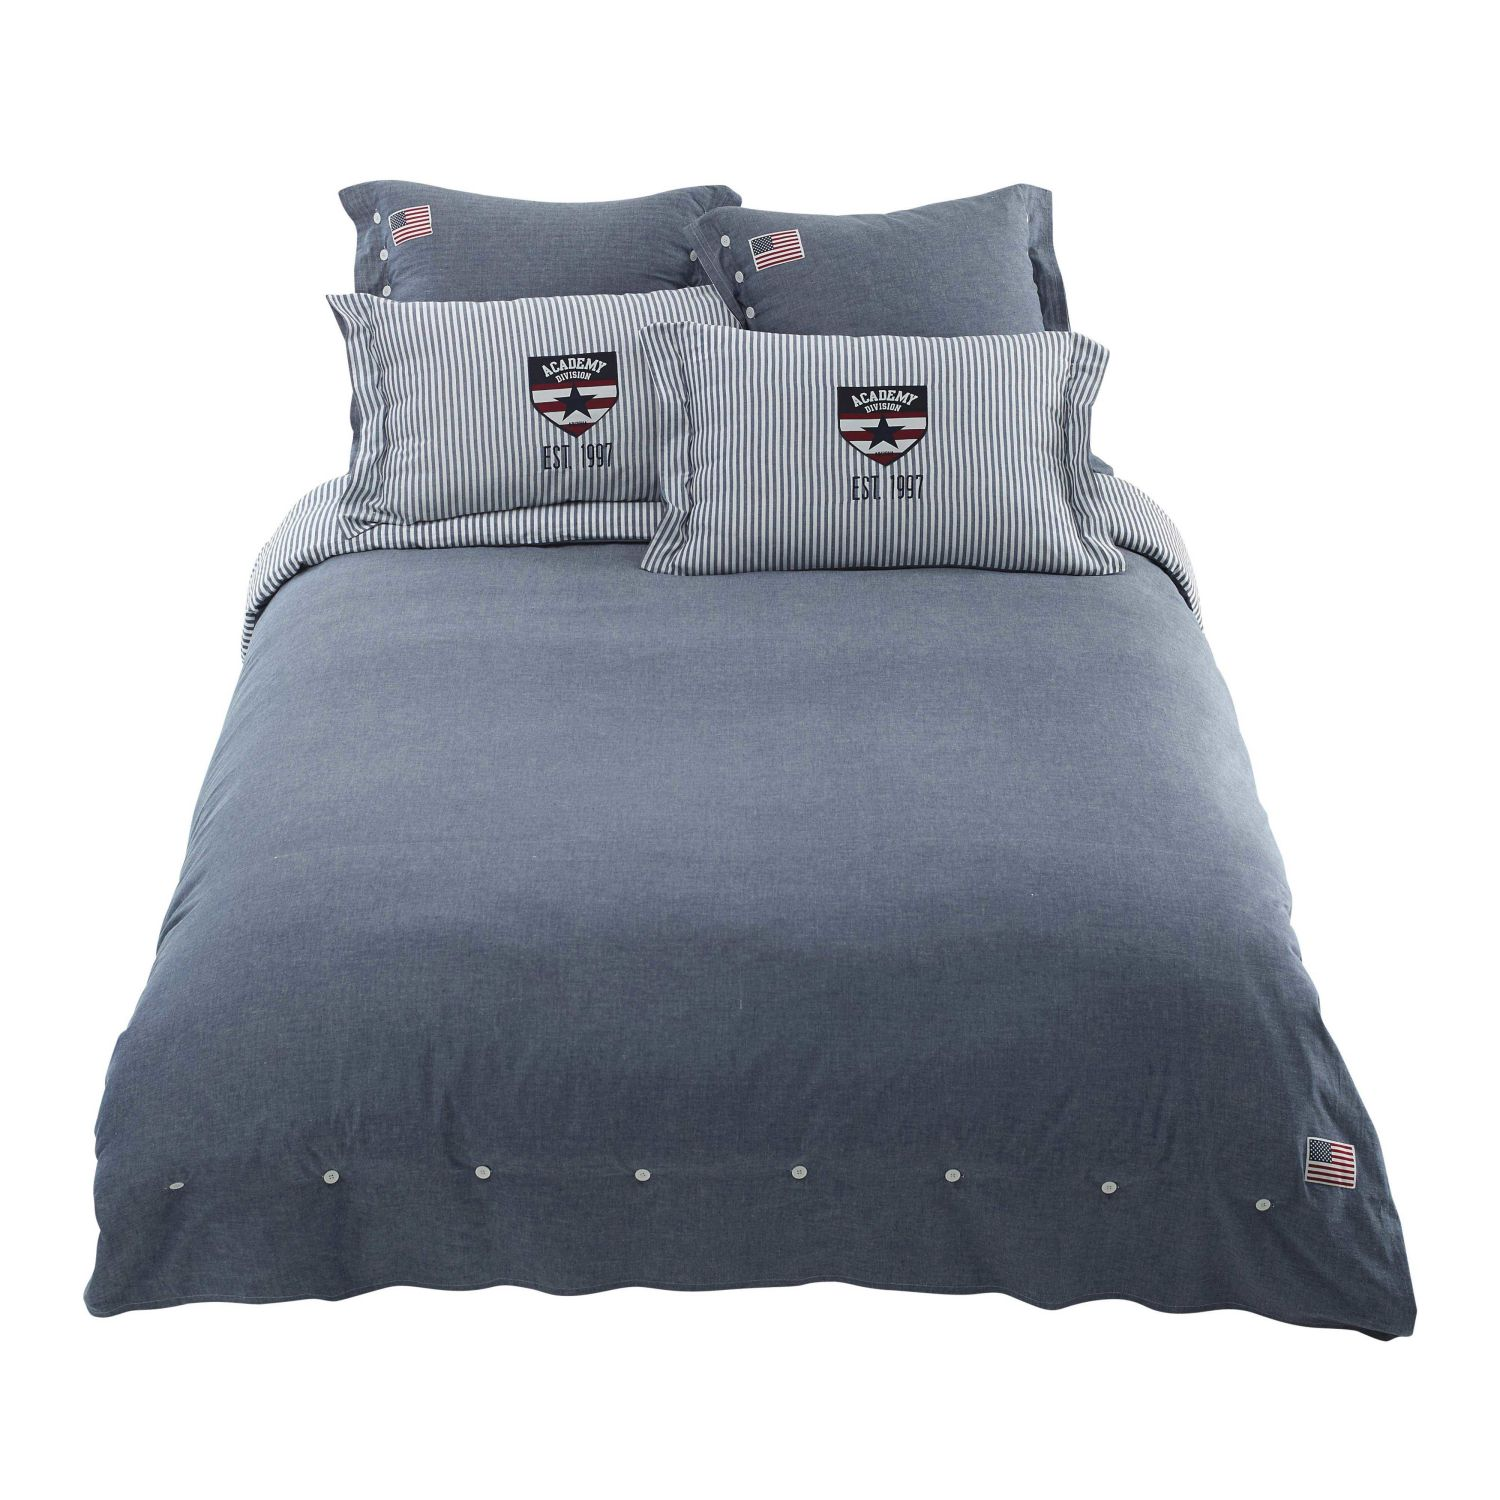 parure de lit chambray en coton bleu 220x240 maisons du monde. Black Bedroom Furniture Sets. Home Design Ideas